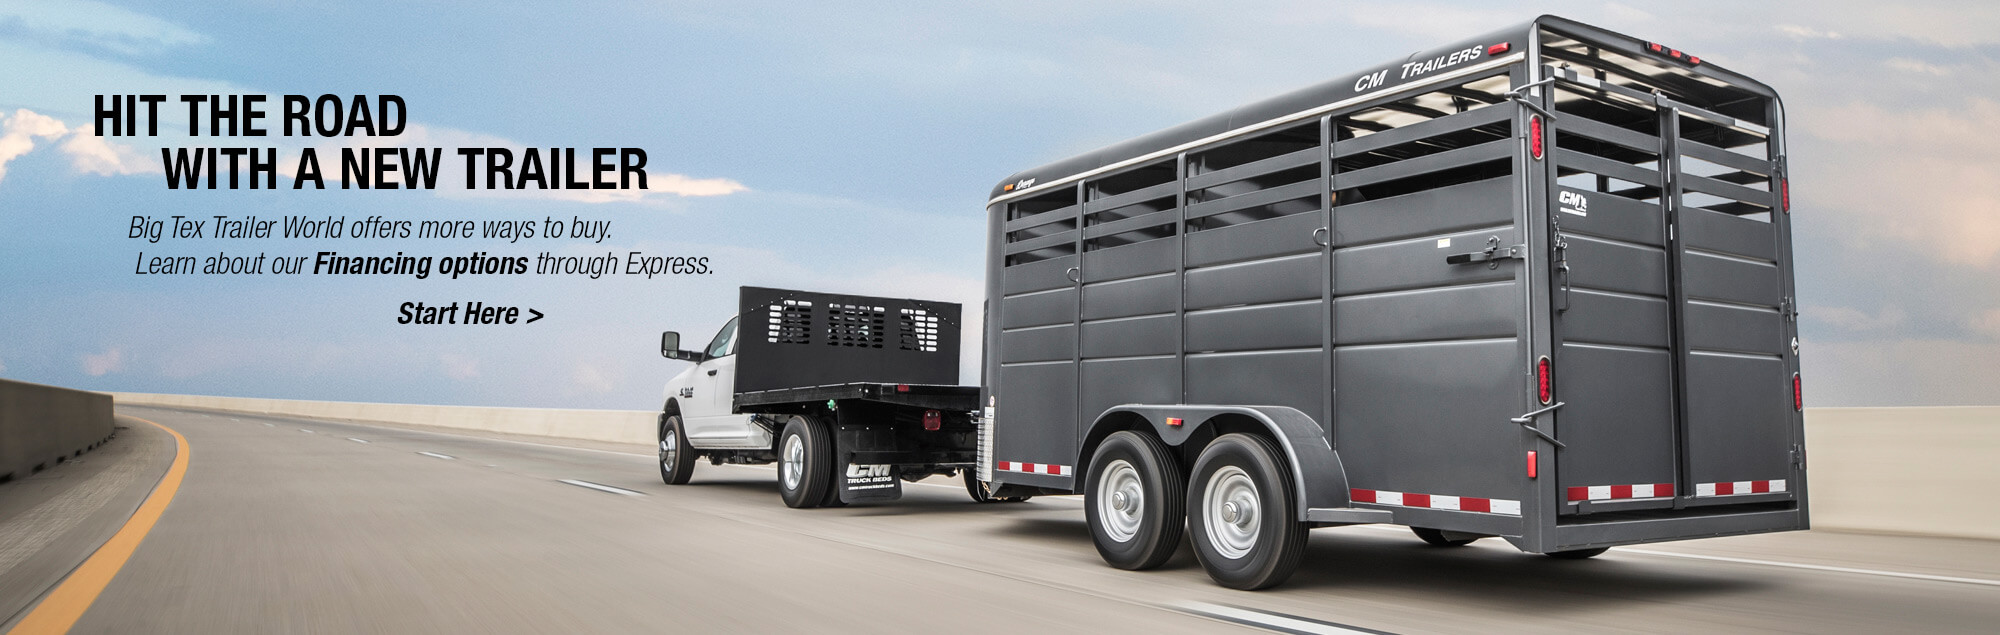 Big Tex Heavy Duty Trailers | Big Tex Trailer World